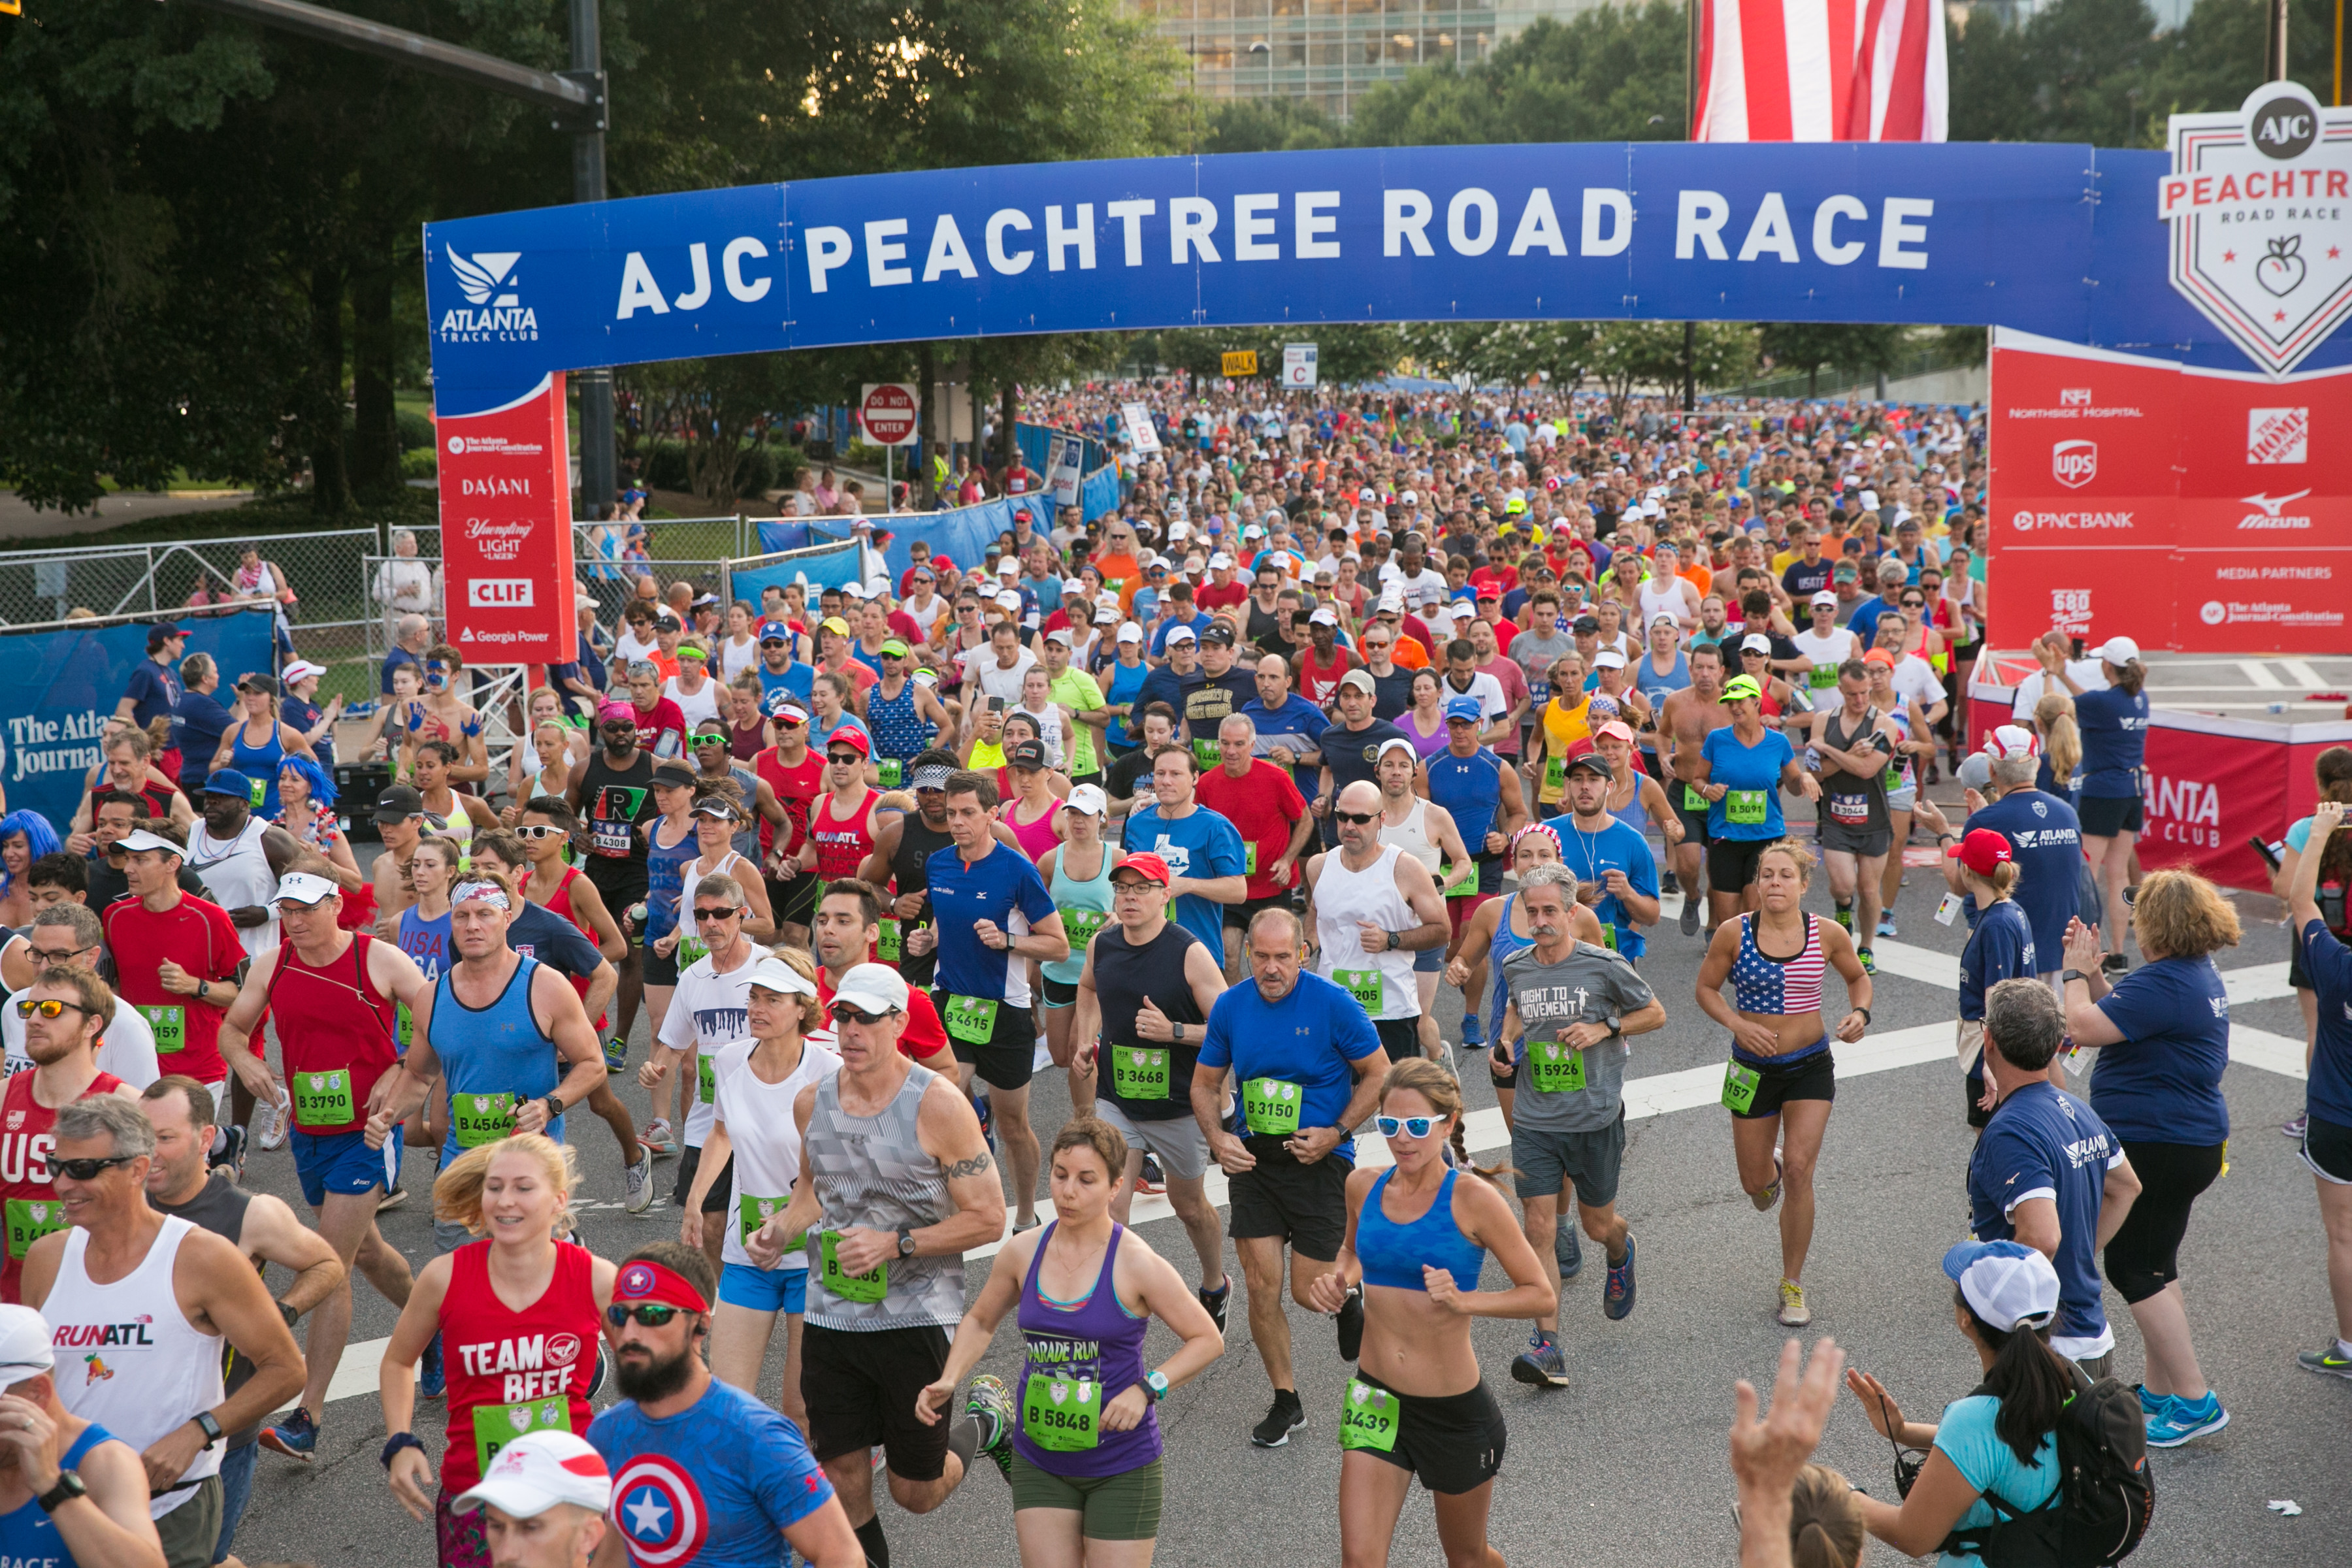 The 51st Annual Running of the Peachtree normally held July 4th has been moved to Thursday November 26